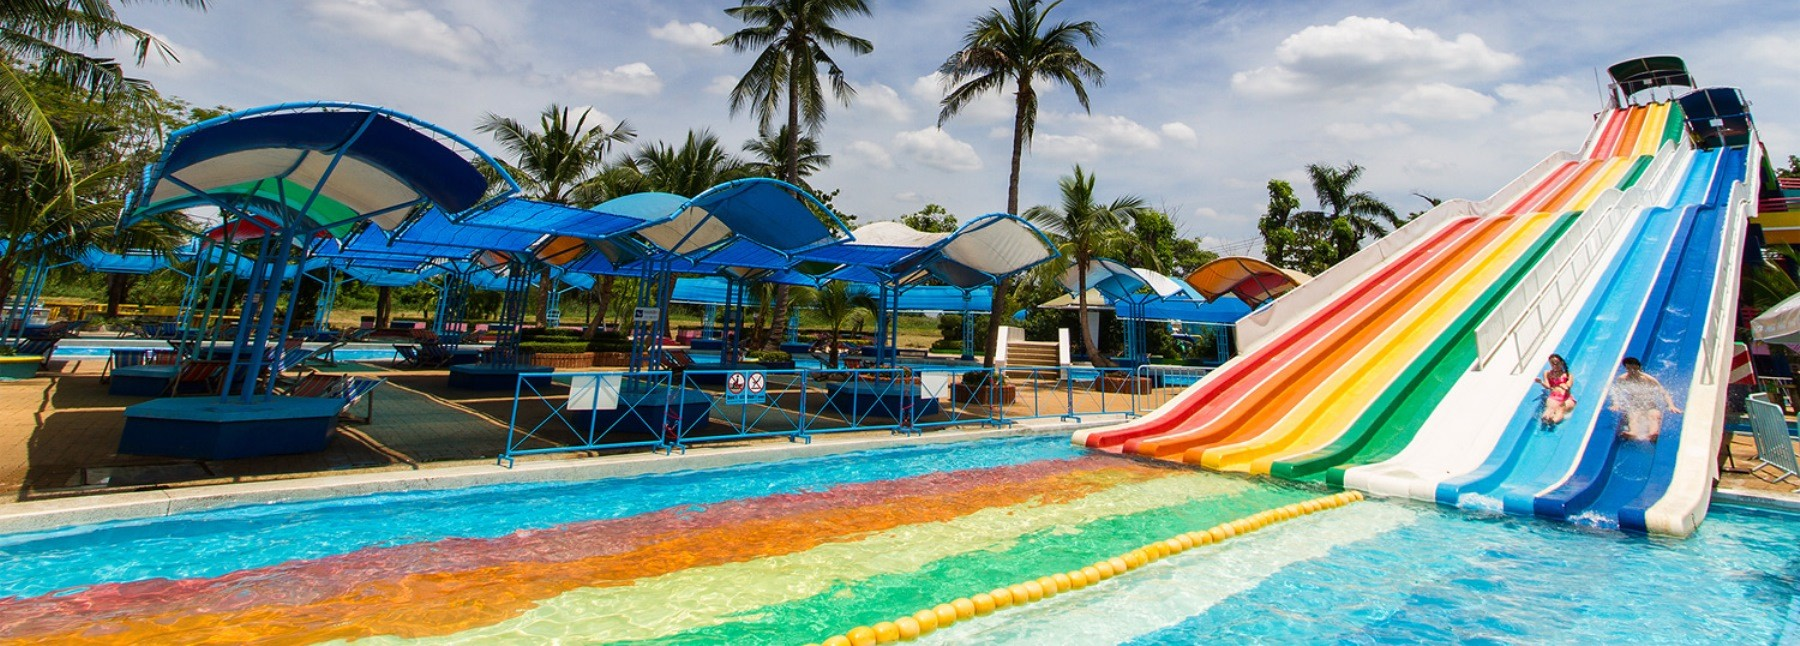 Siam Park Full Day Bangkok Tours